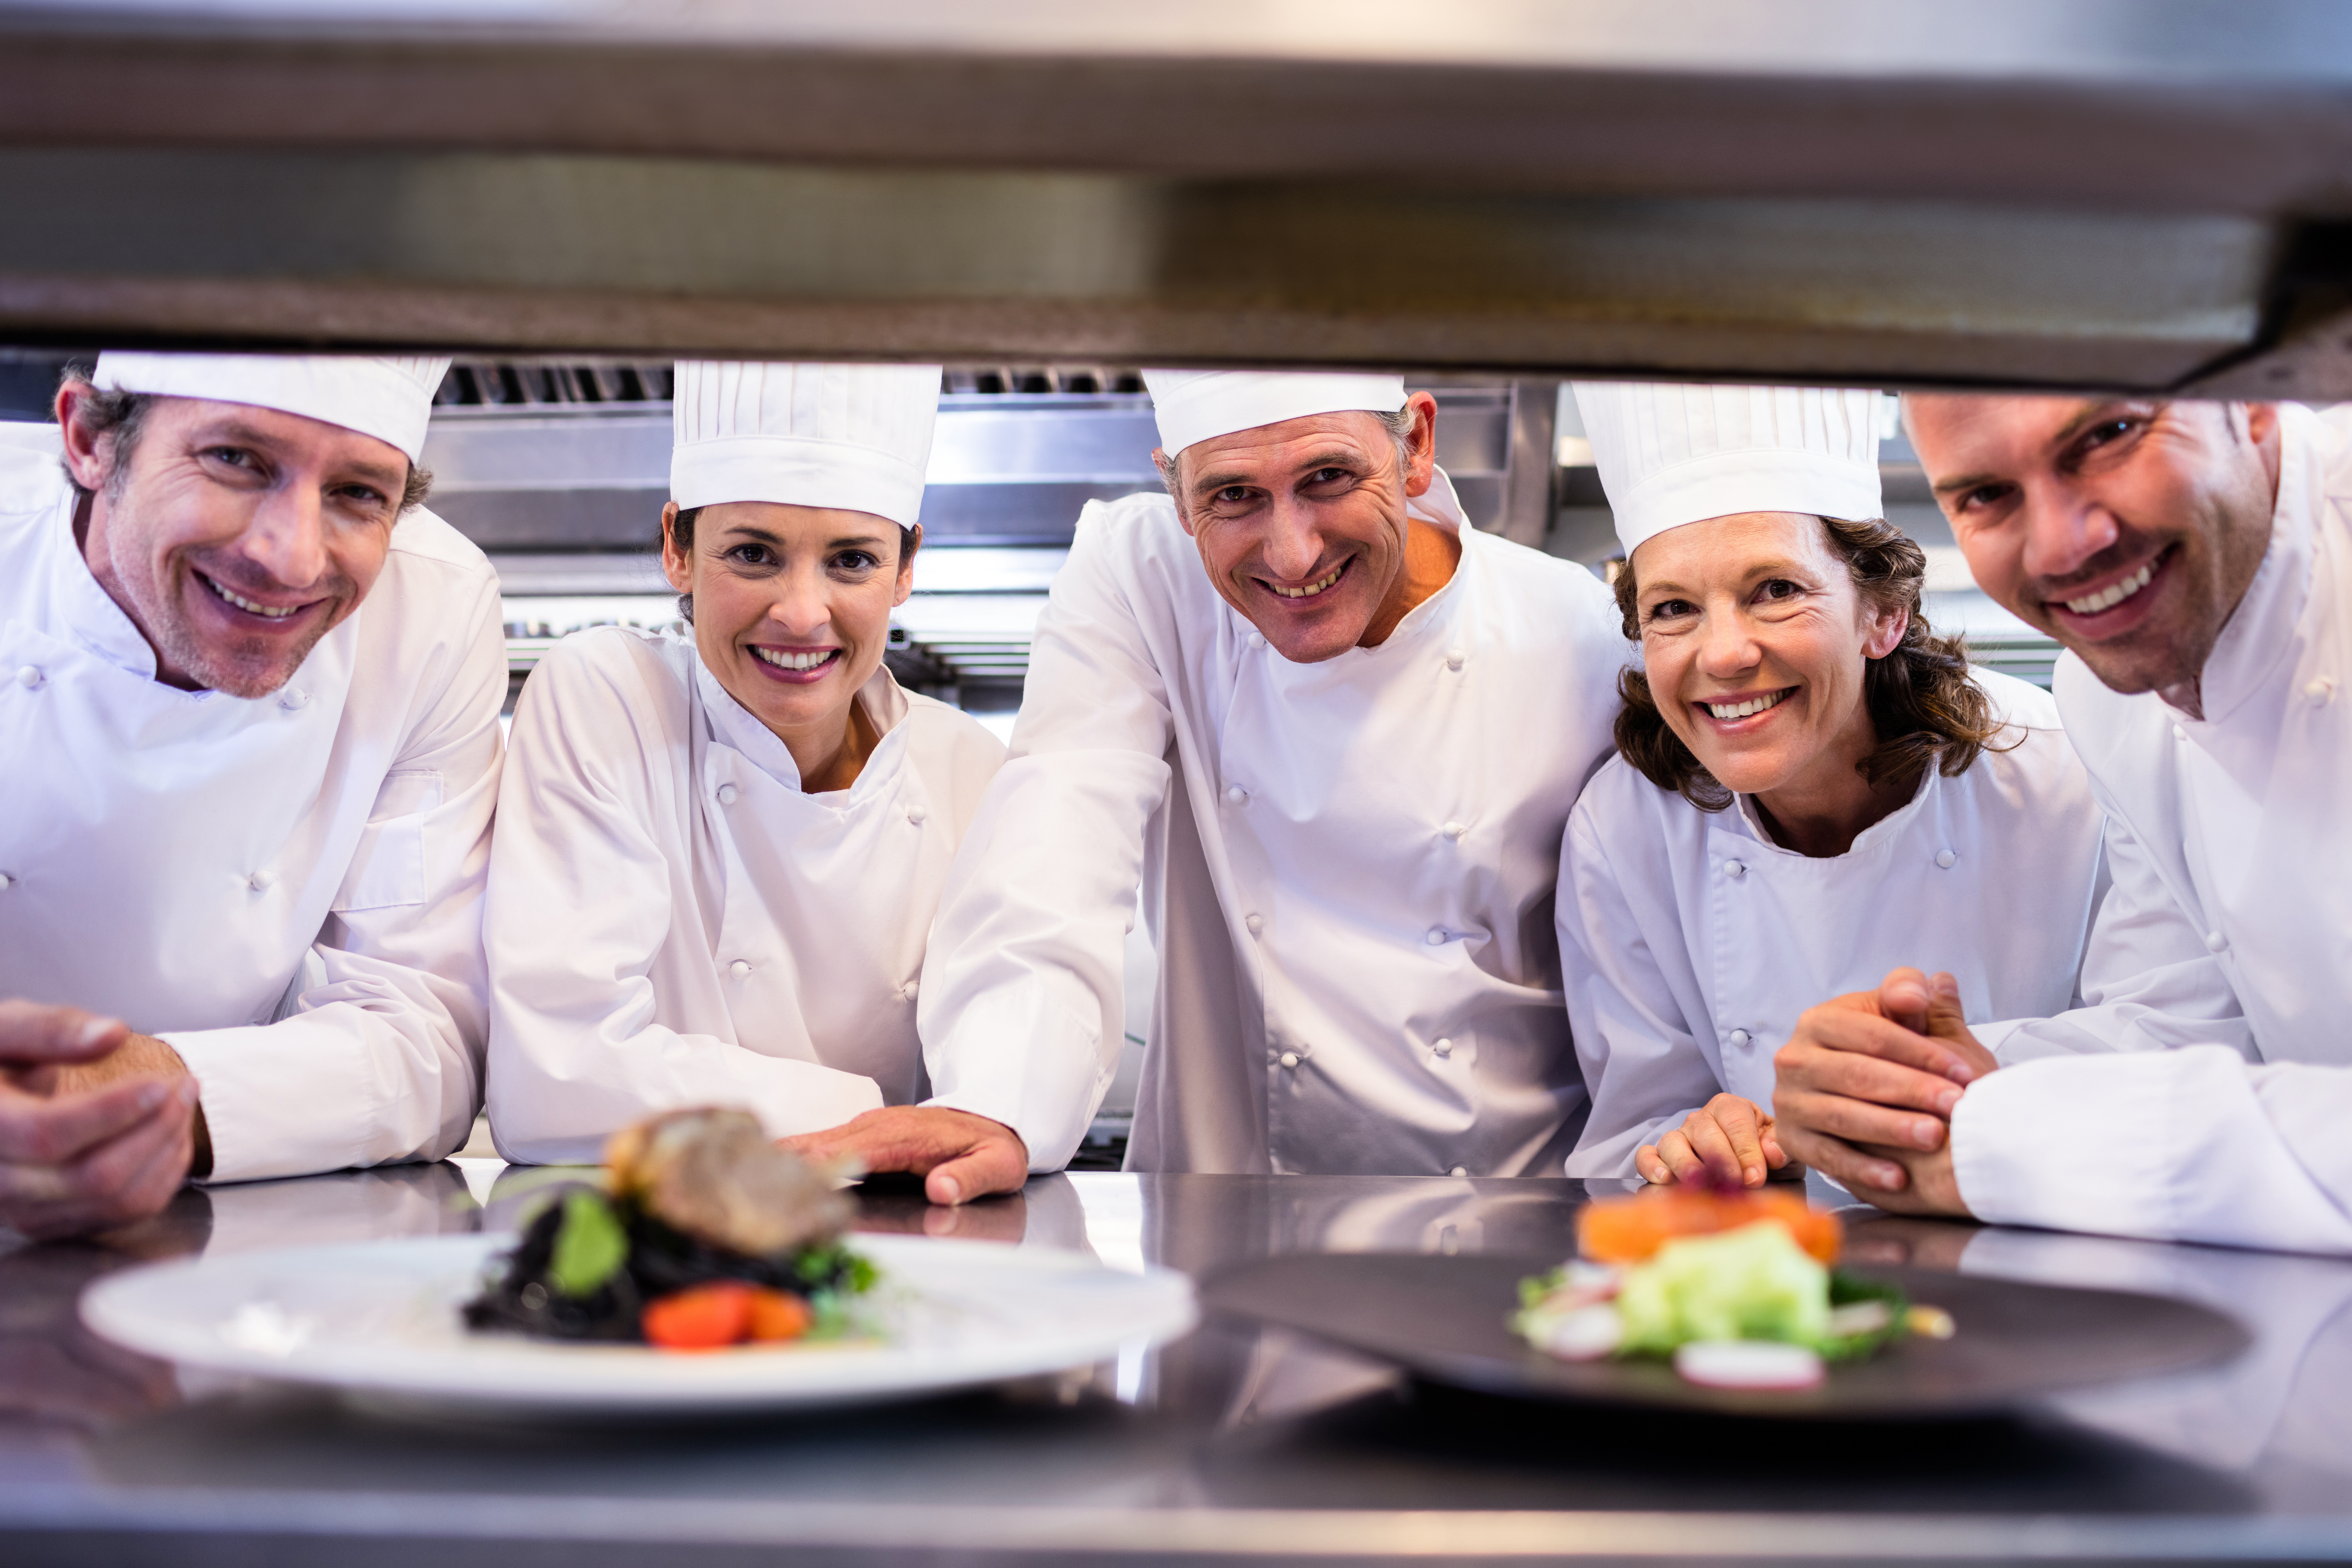 Grease Company For Restaurant Waste Oil and Plumbing Disposal